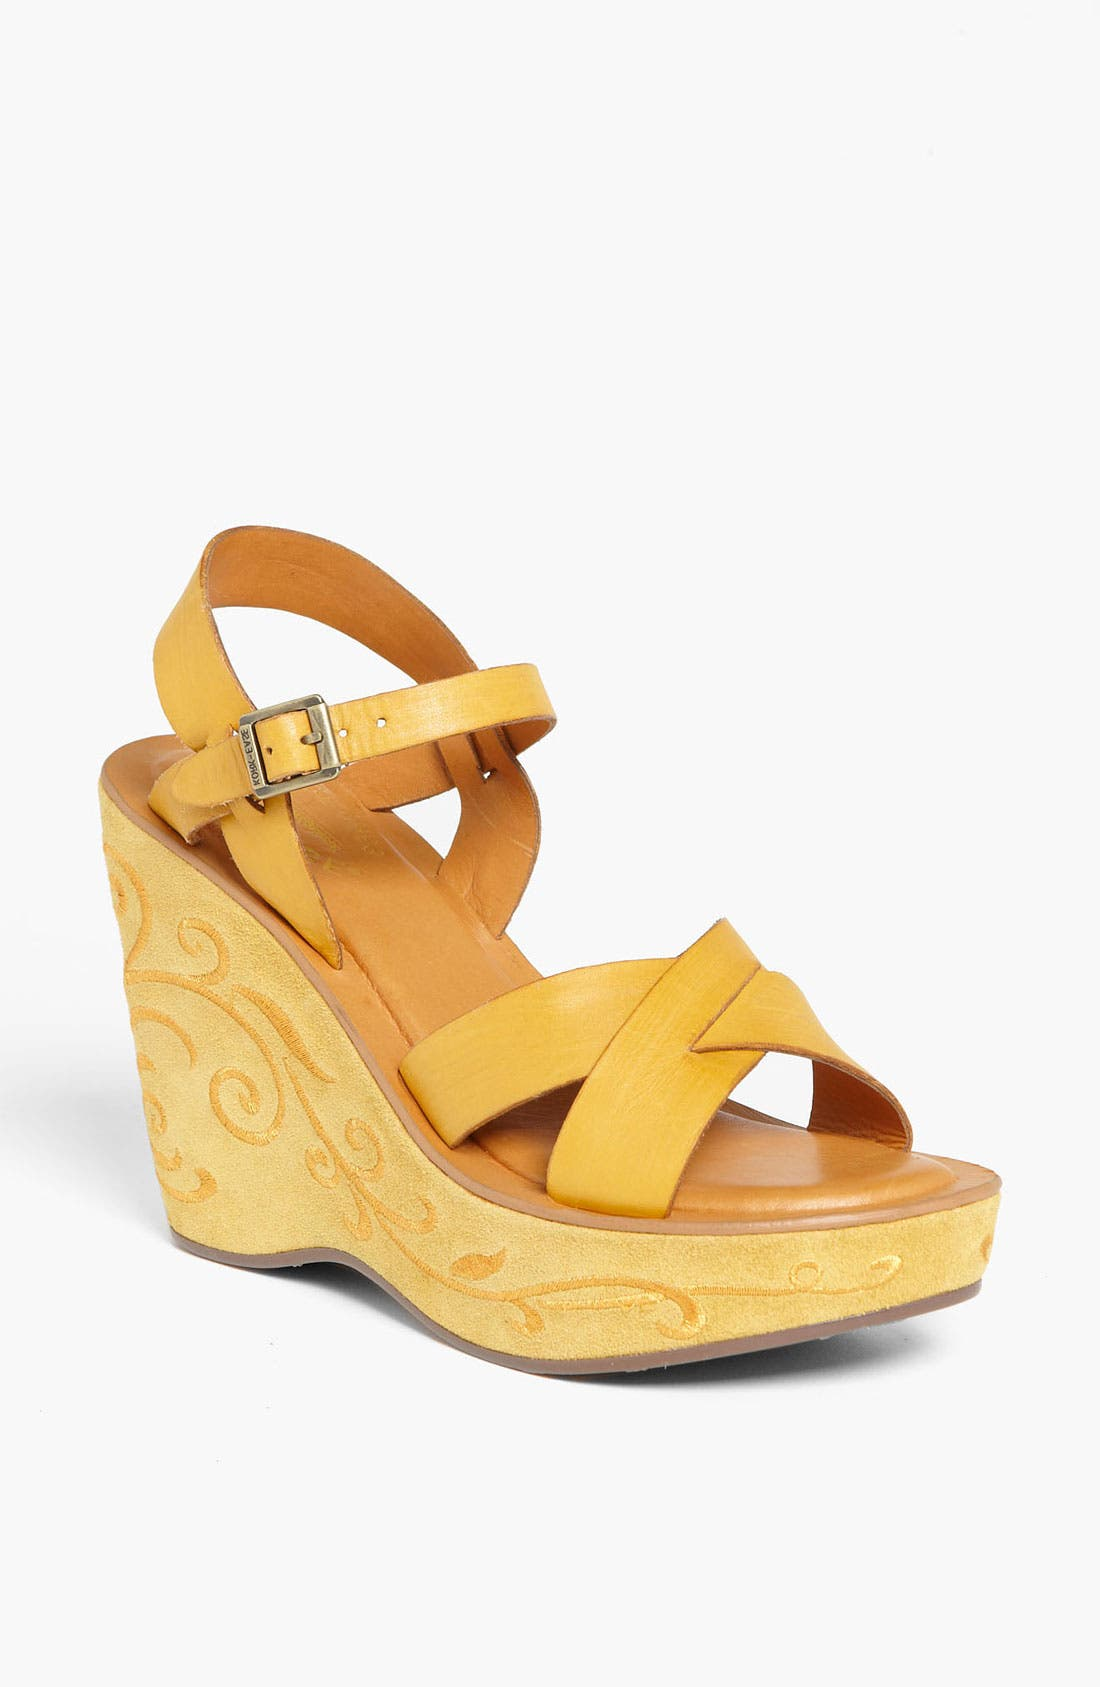 Alternate Image 1 Selected - Kork-Ease 'Bette' Wedge Sandal